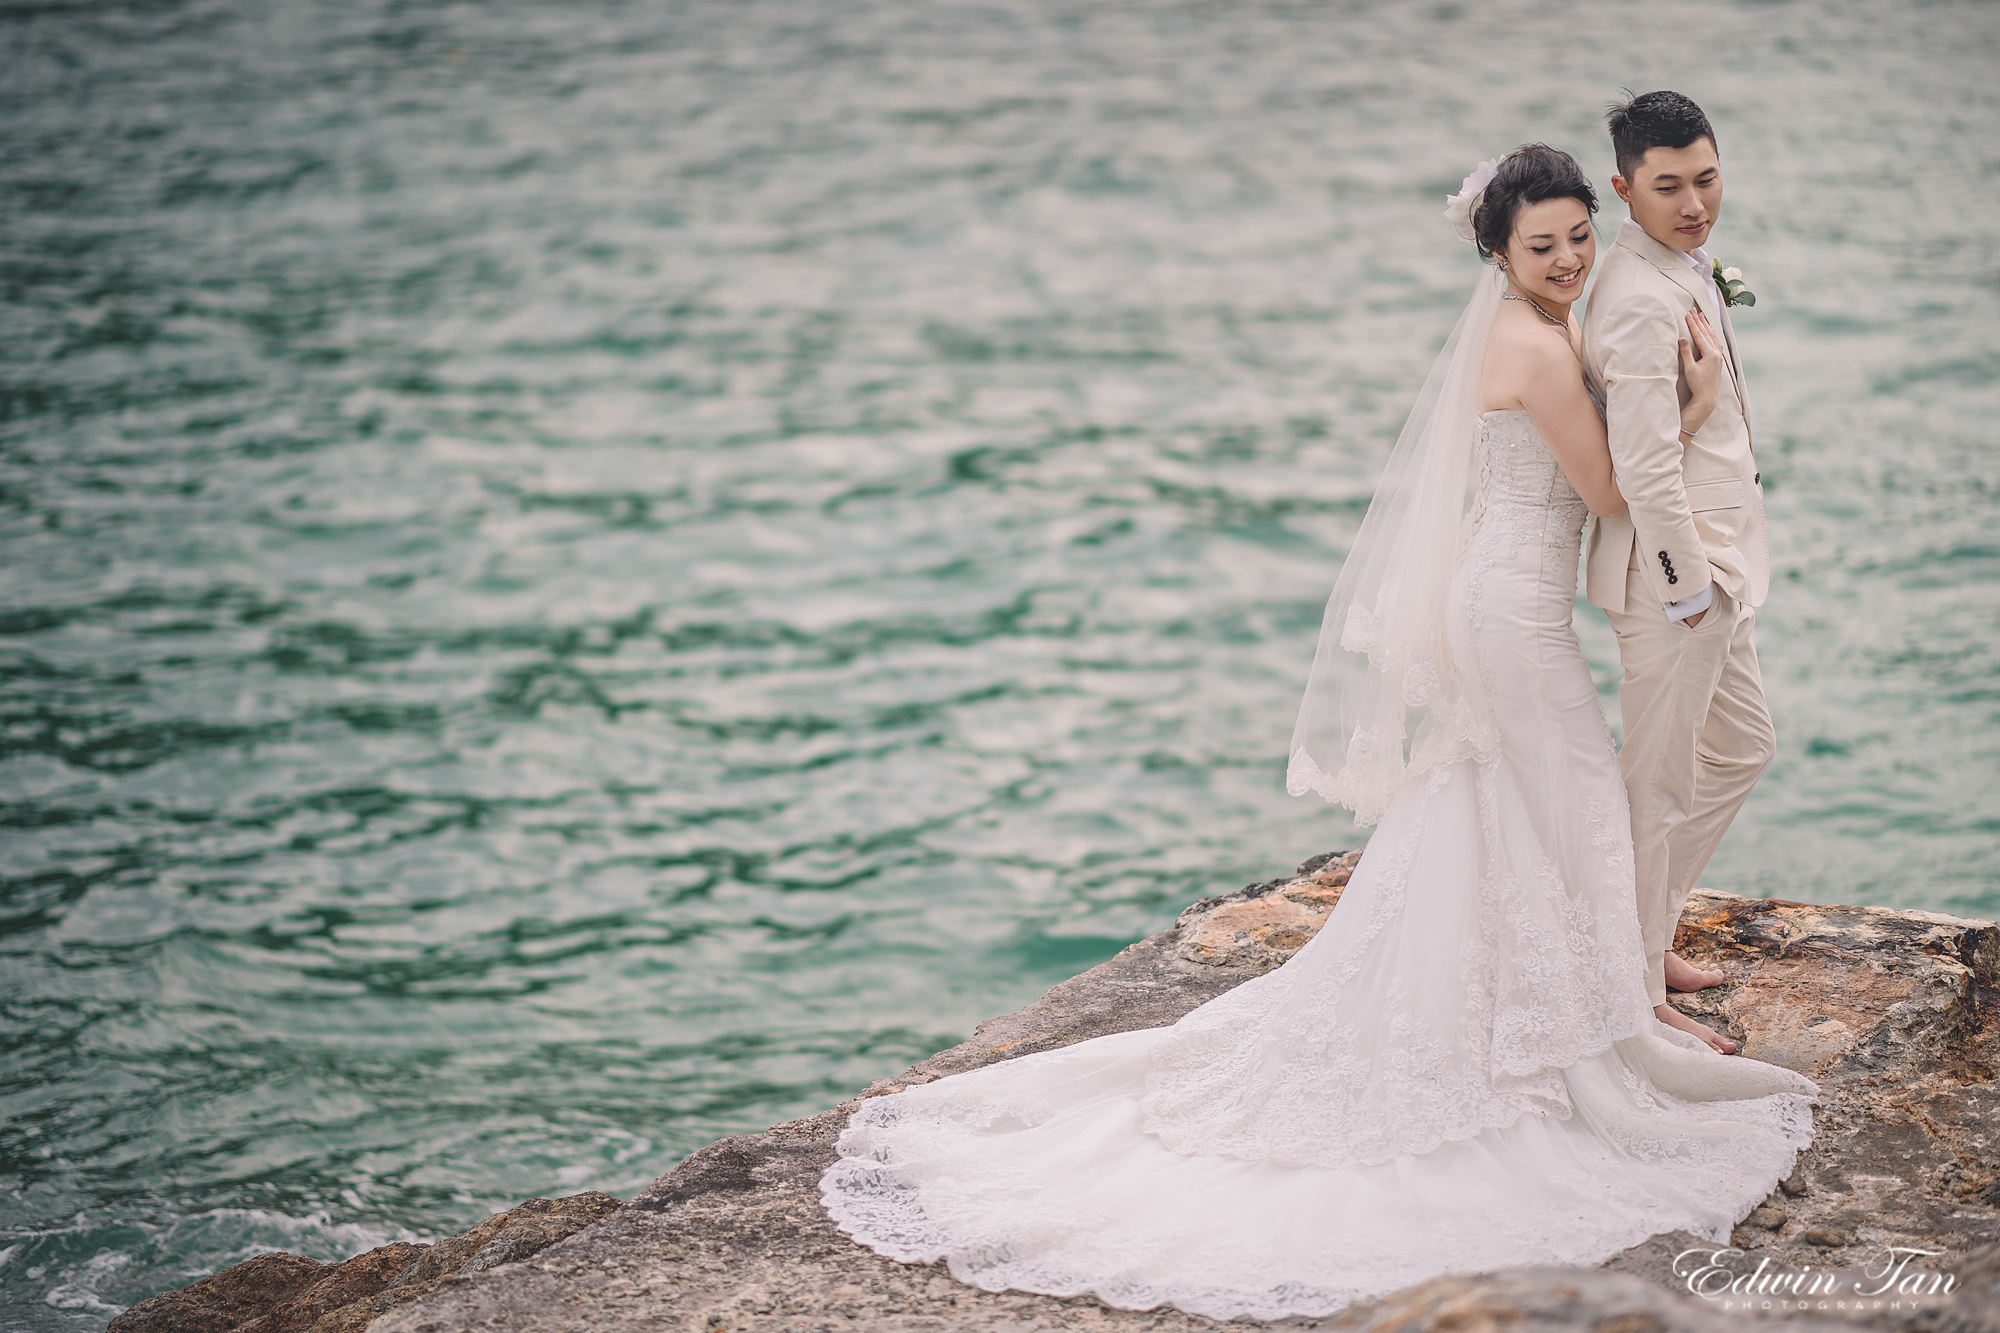 Actual day wedding photographer malaysia Always Ready Ready Team! - NCNG